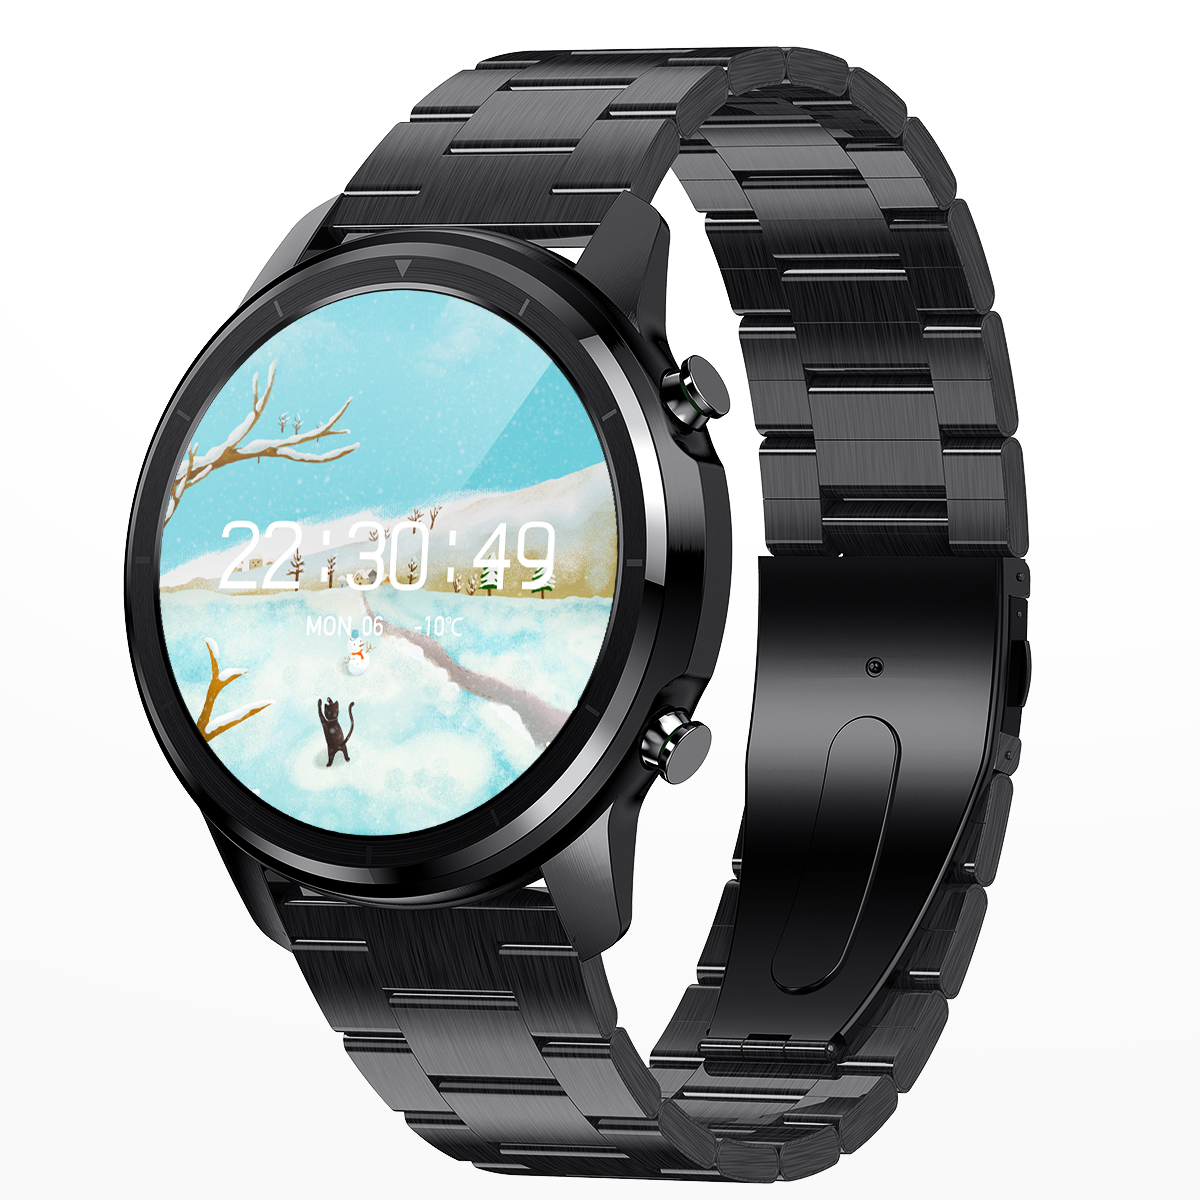 Lemfo LF26 Round Dial Smart Bracelet 150mAh IP67 Waterproof Bluetooth 5.0 1.3 inch Full HD IPS Screen Watch black_Black steel strap